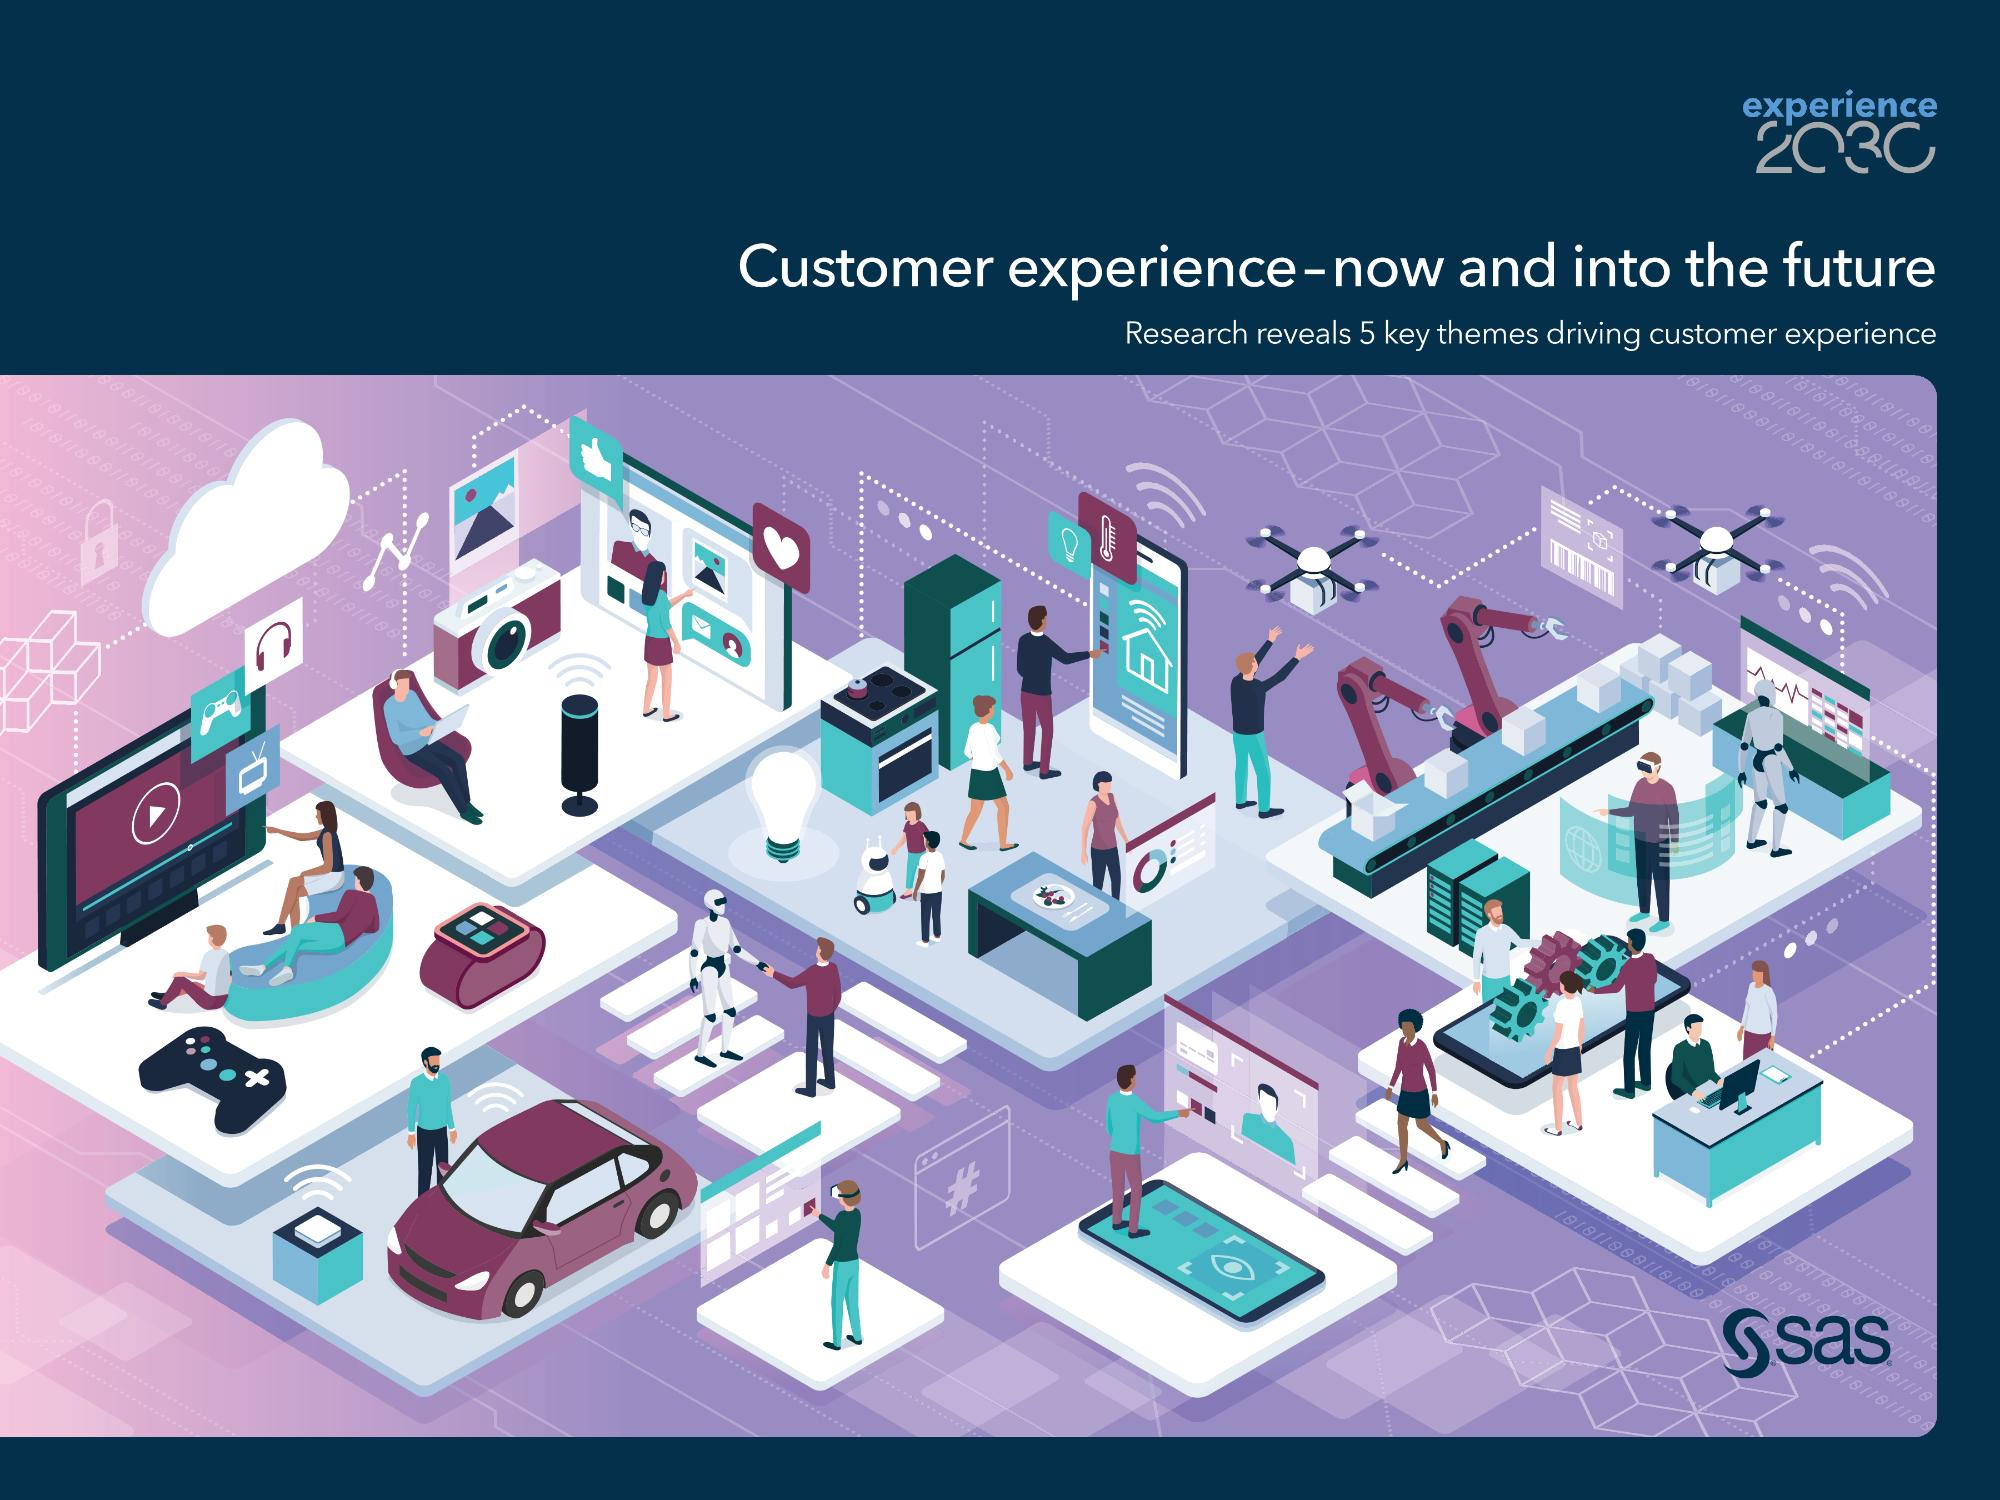 Customer experience - now and into the future